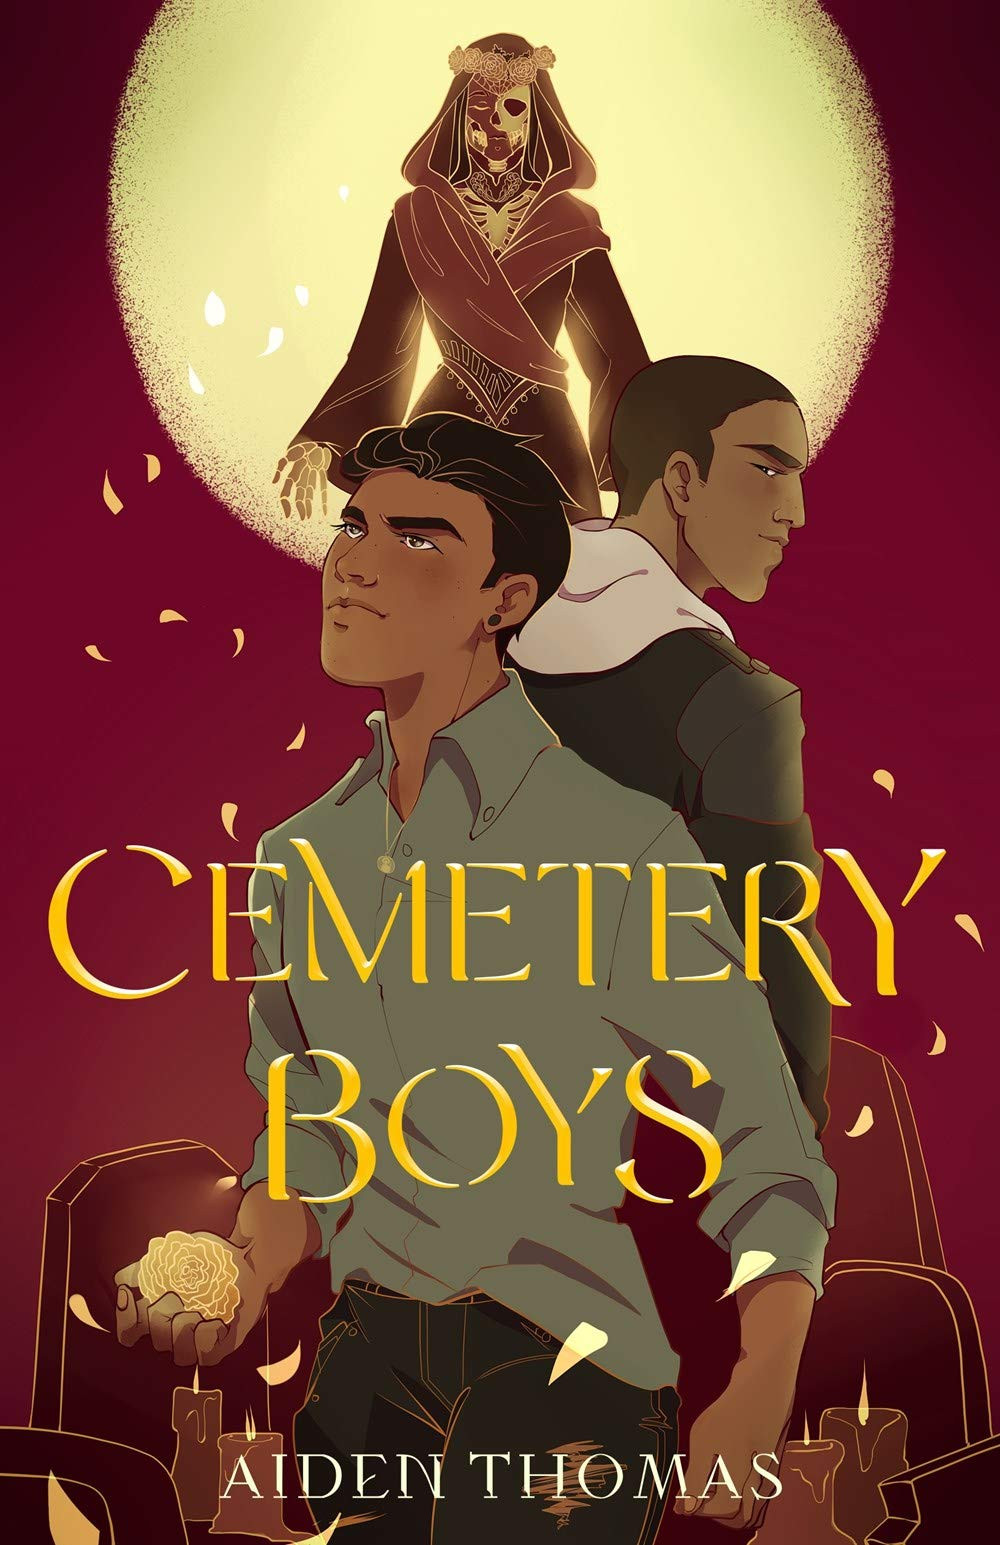 Book cover of Cemetery Boys by Aiden Thomas.